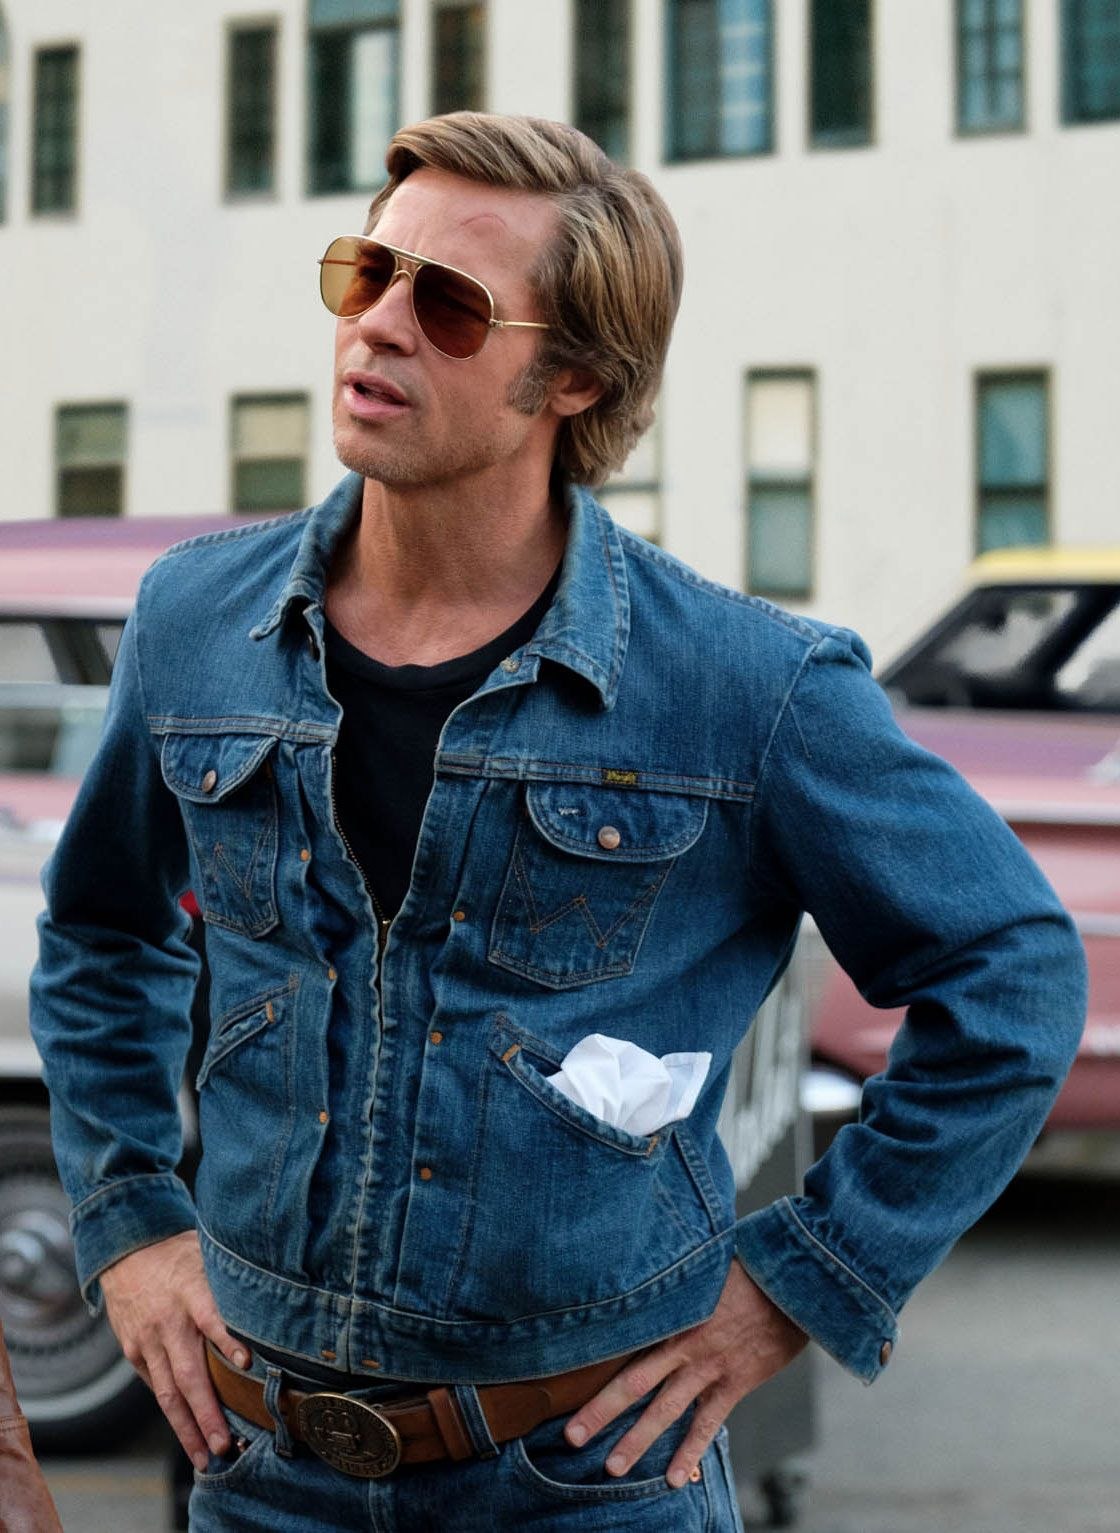 Brad Pitt's Wrangler Jean Jacket From 'Once Upon a Time...In Hollywood'